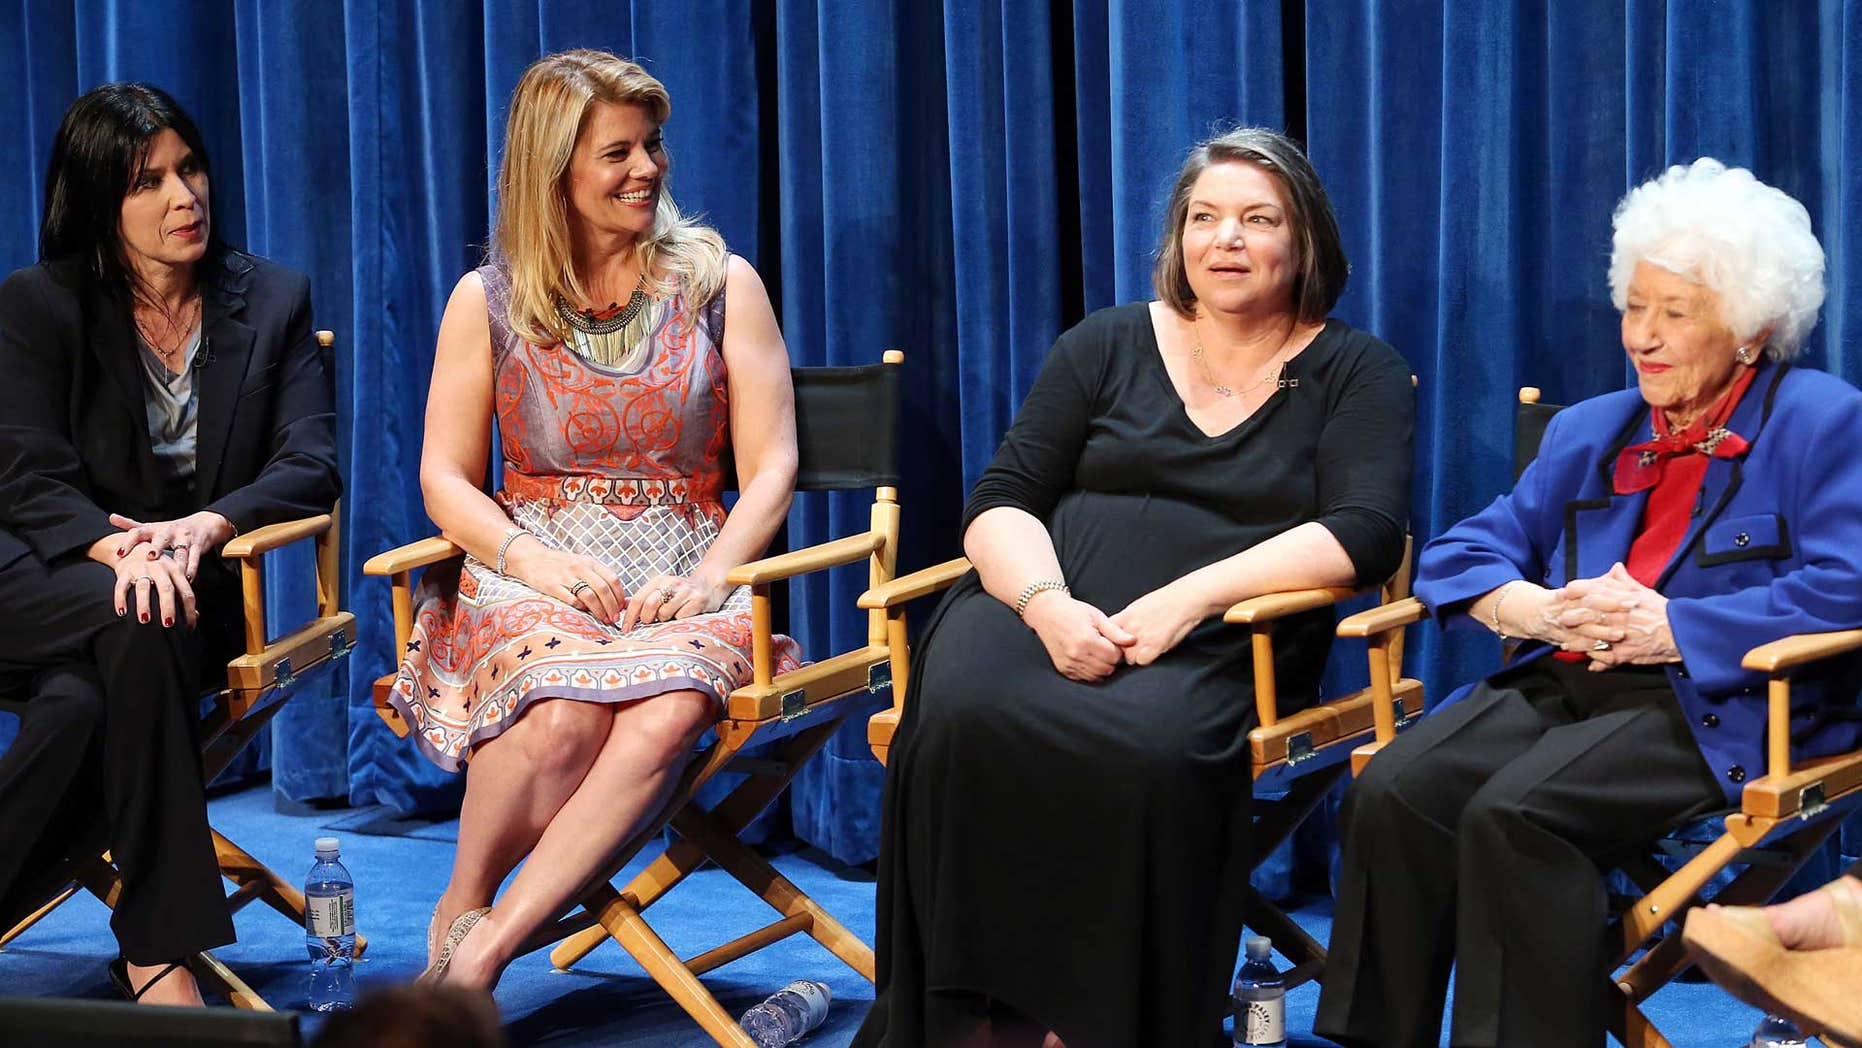 """Nancy McKeon, Lisa Whelchel, Mindy Cohn, and Charlotte Rae at """"The Facts of Life"""" reunion at the Paley Center"""